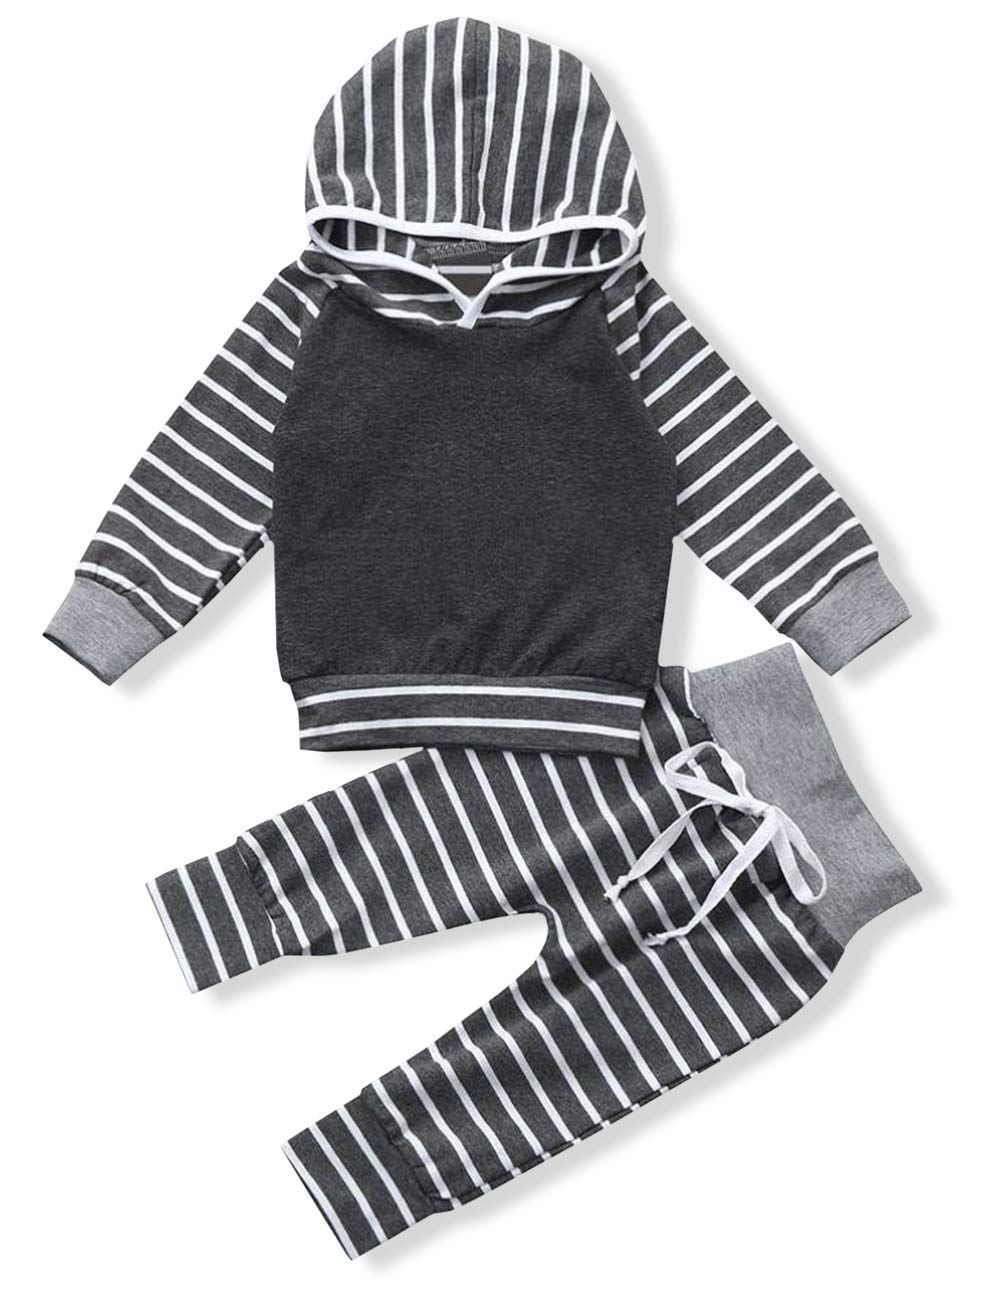 Newborn Baby Boy Clothes Long Sleeve Hoodie Sweatshirt Tops with Strip Pants Outfits Sets(6-12 Months)